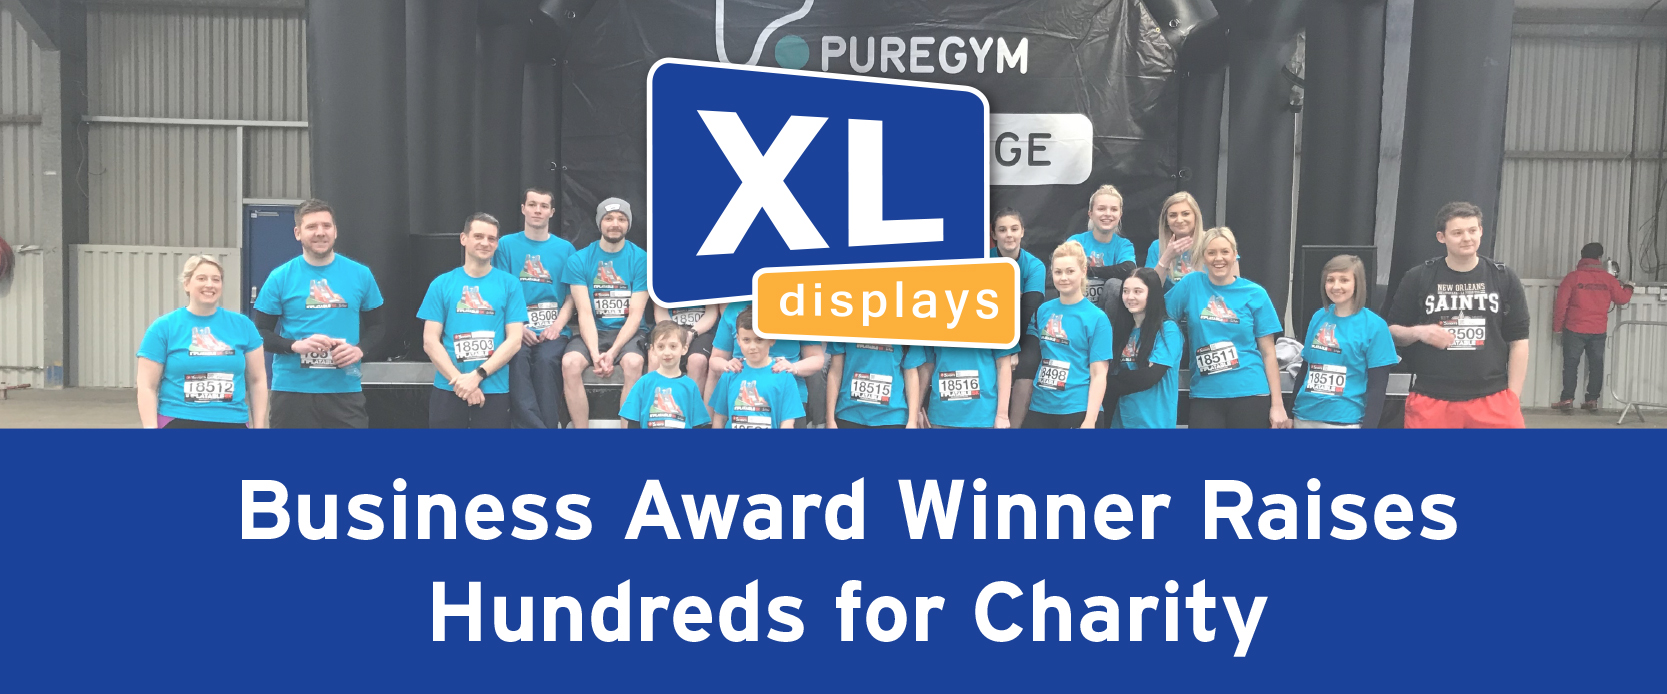 Business Award Winner Raises Hundreds for Charity